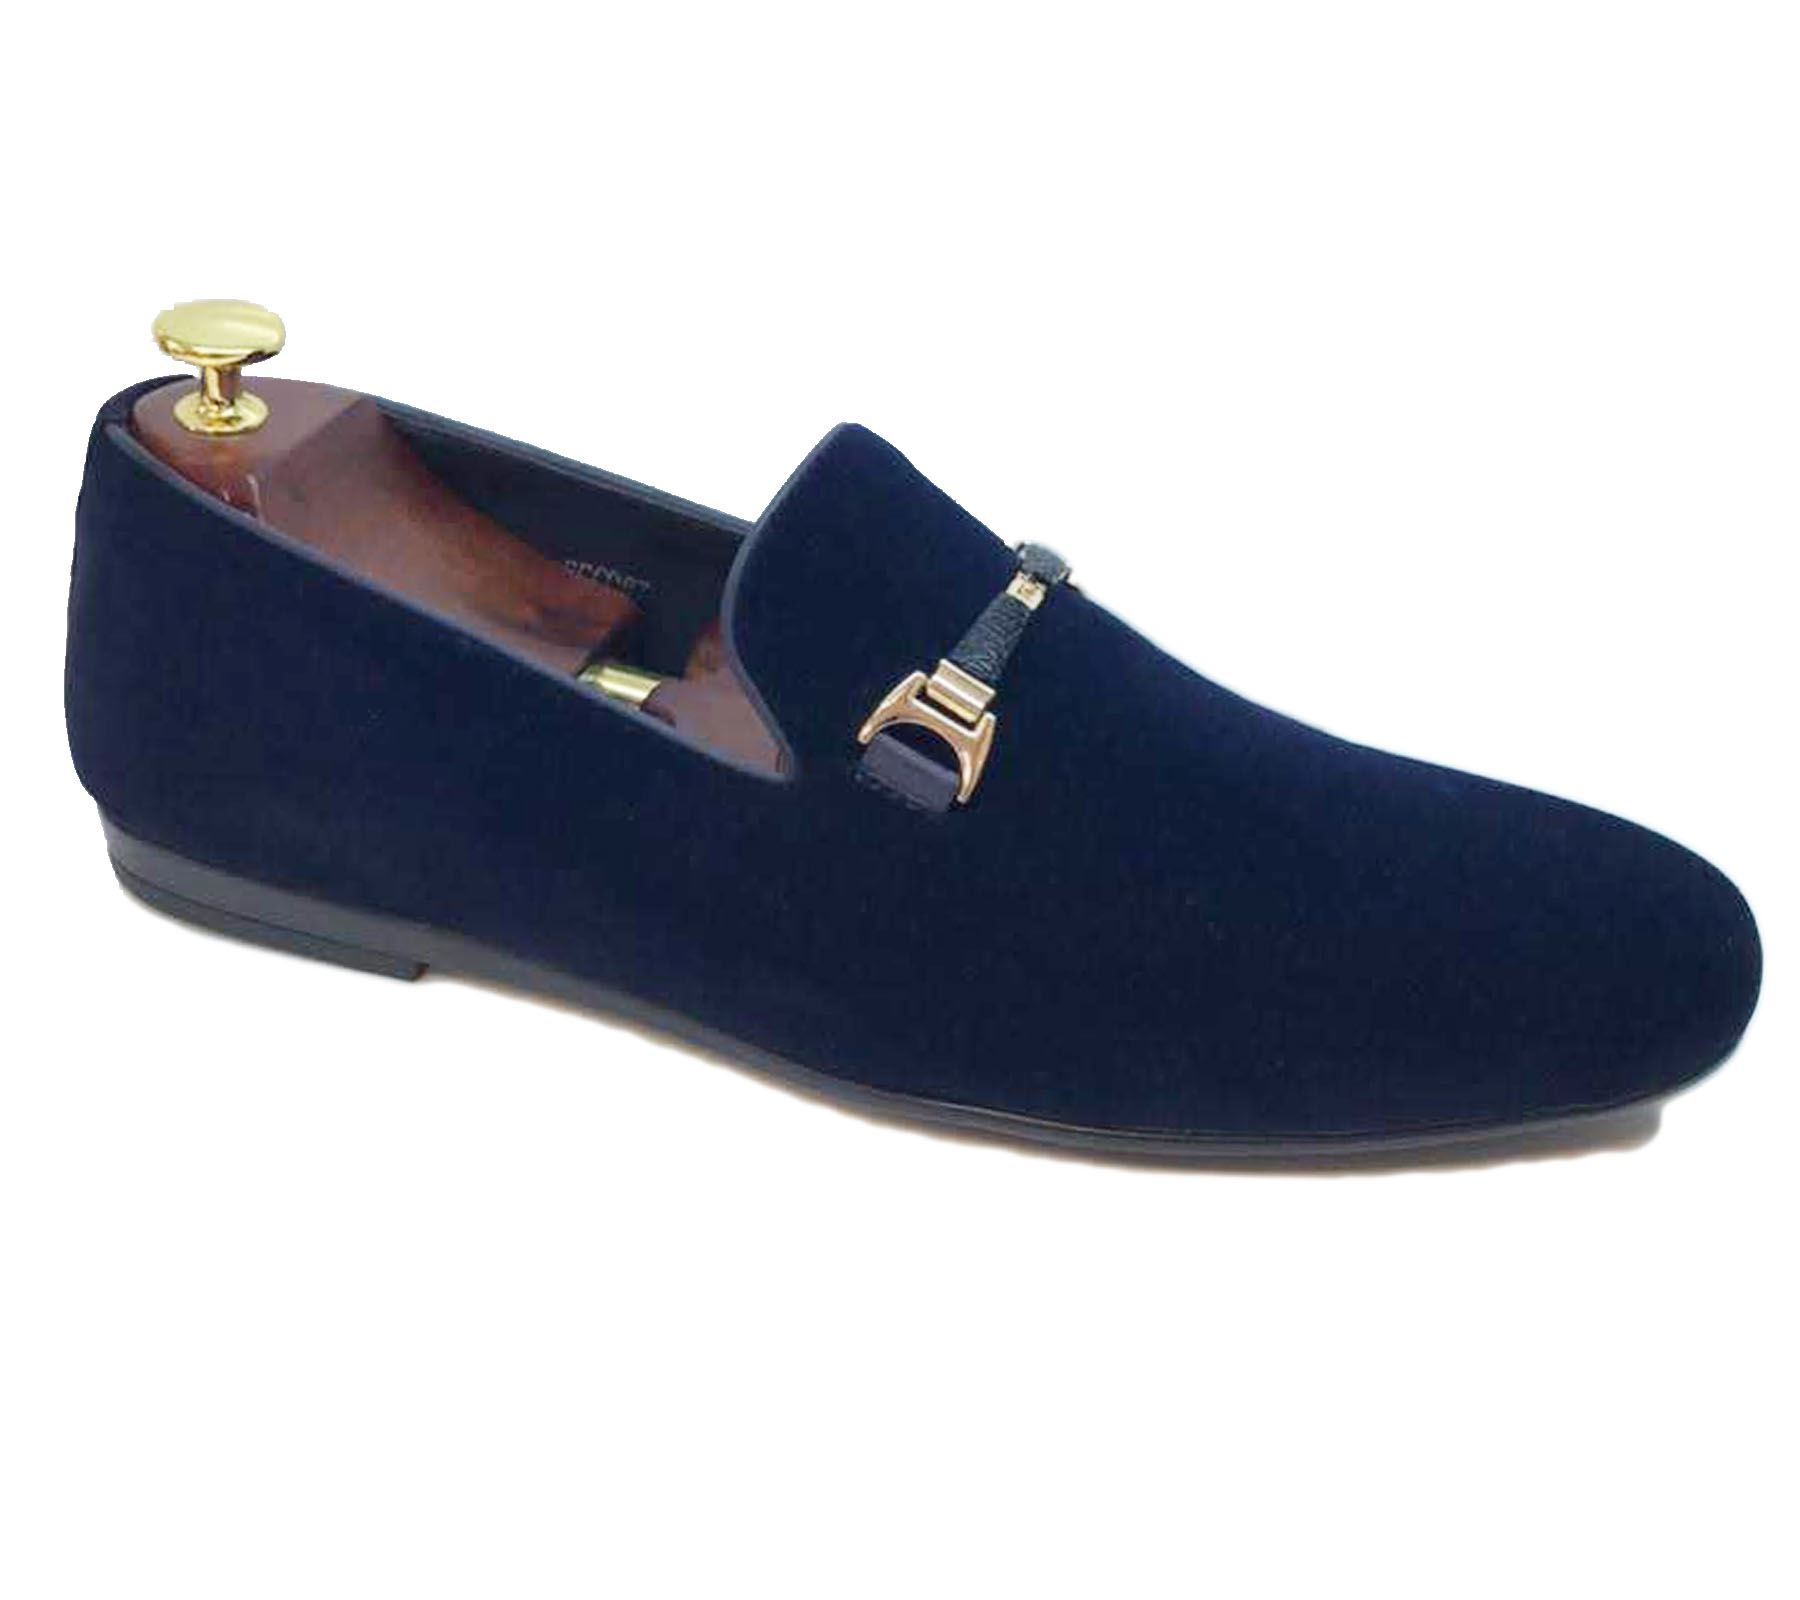 Mens-Loafers-Mocassin-Boat-Deck-Shoes-Flat-Slip-On-Driving-Casual-Smart-Pumps thumbnail 18